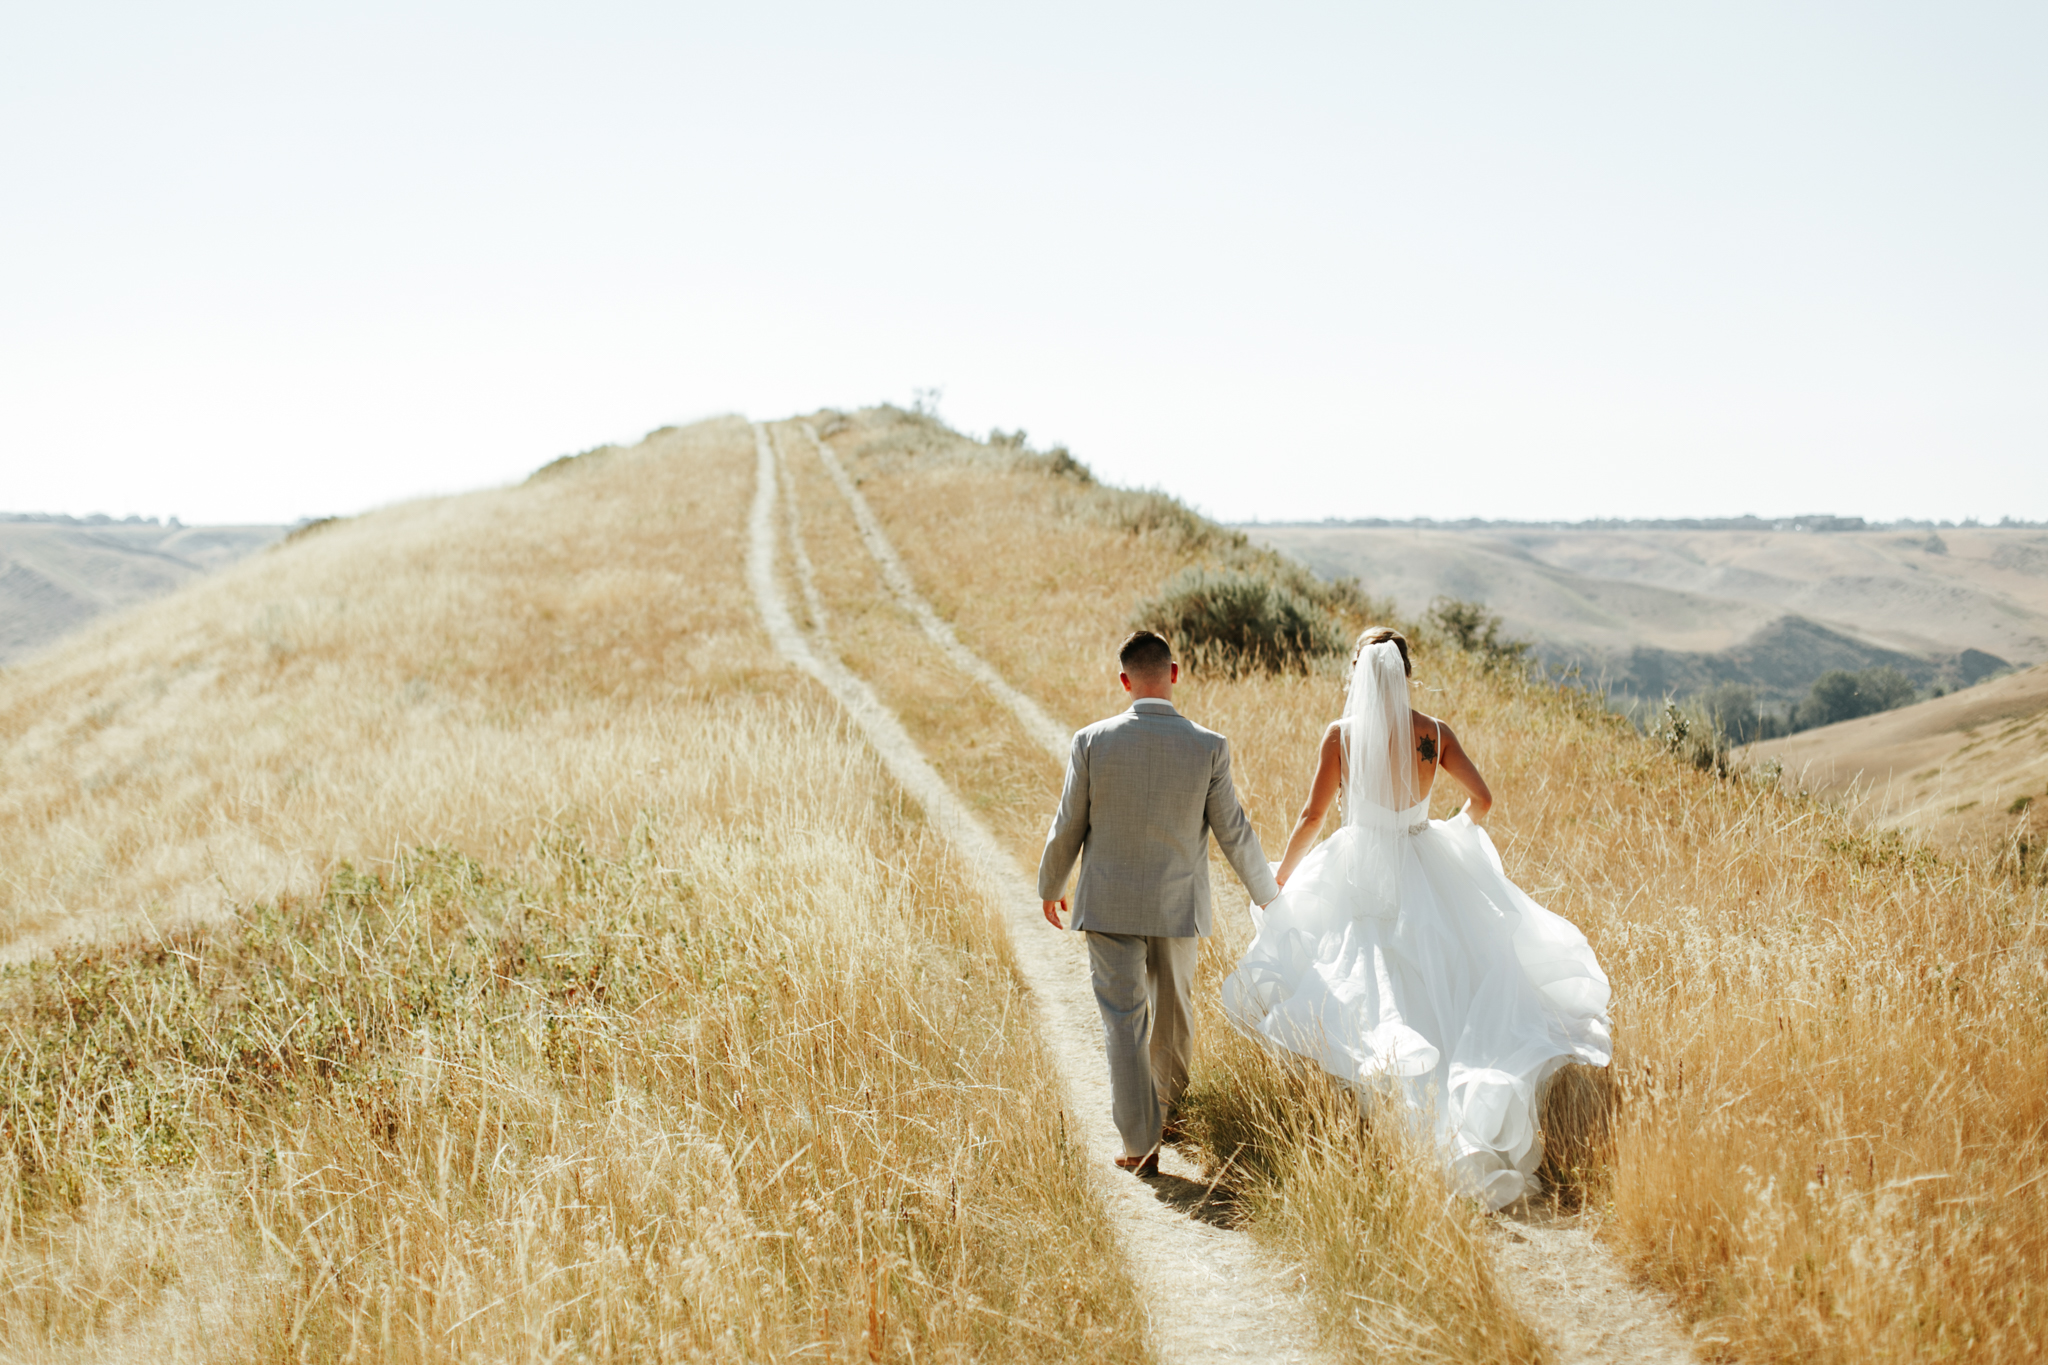 lethbridge-wedding-photography-love-and-be-loved-photographer-sean-sharla-henderson-lake-wedding-image-picture-photo-103.jpg